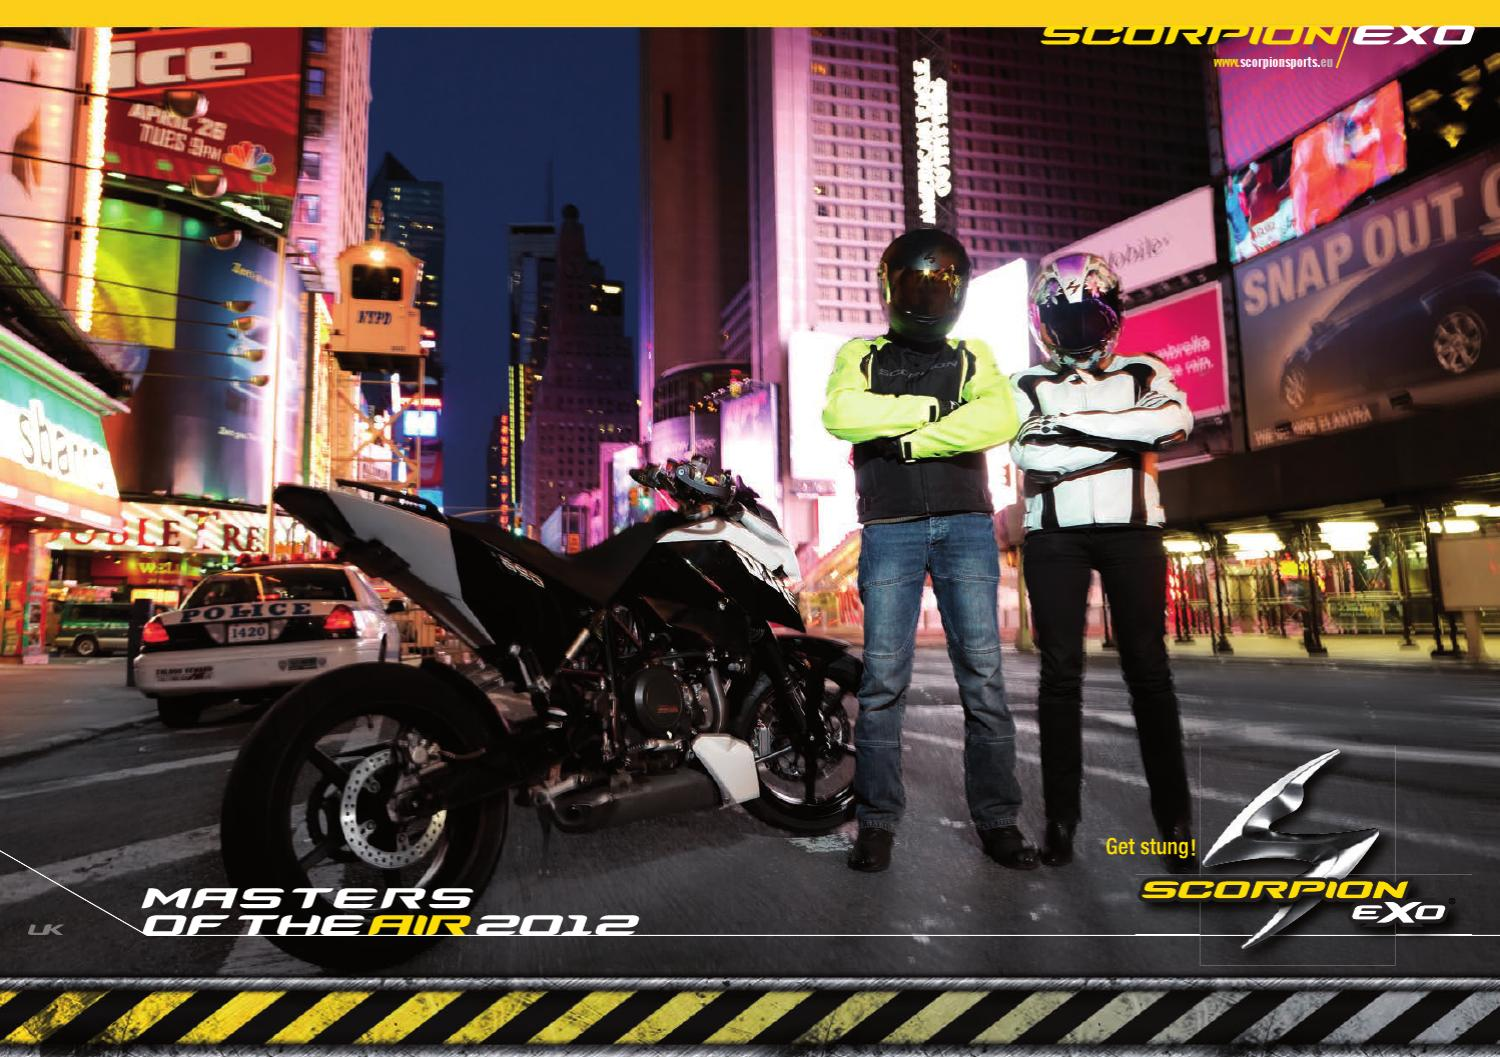 56bf7608 Scorpion Sports catalogue - January 2012 by sebastian kuebler - issuu